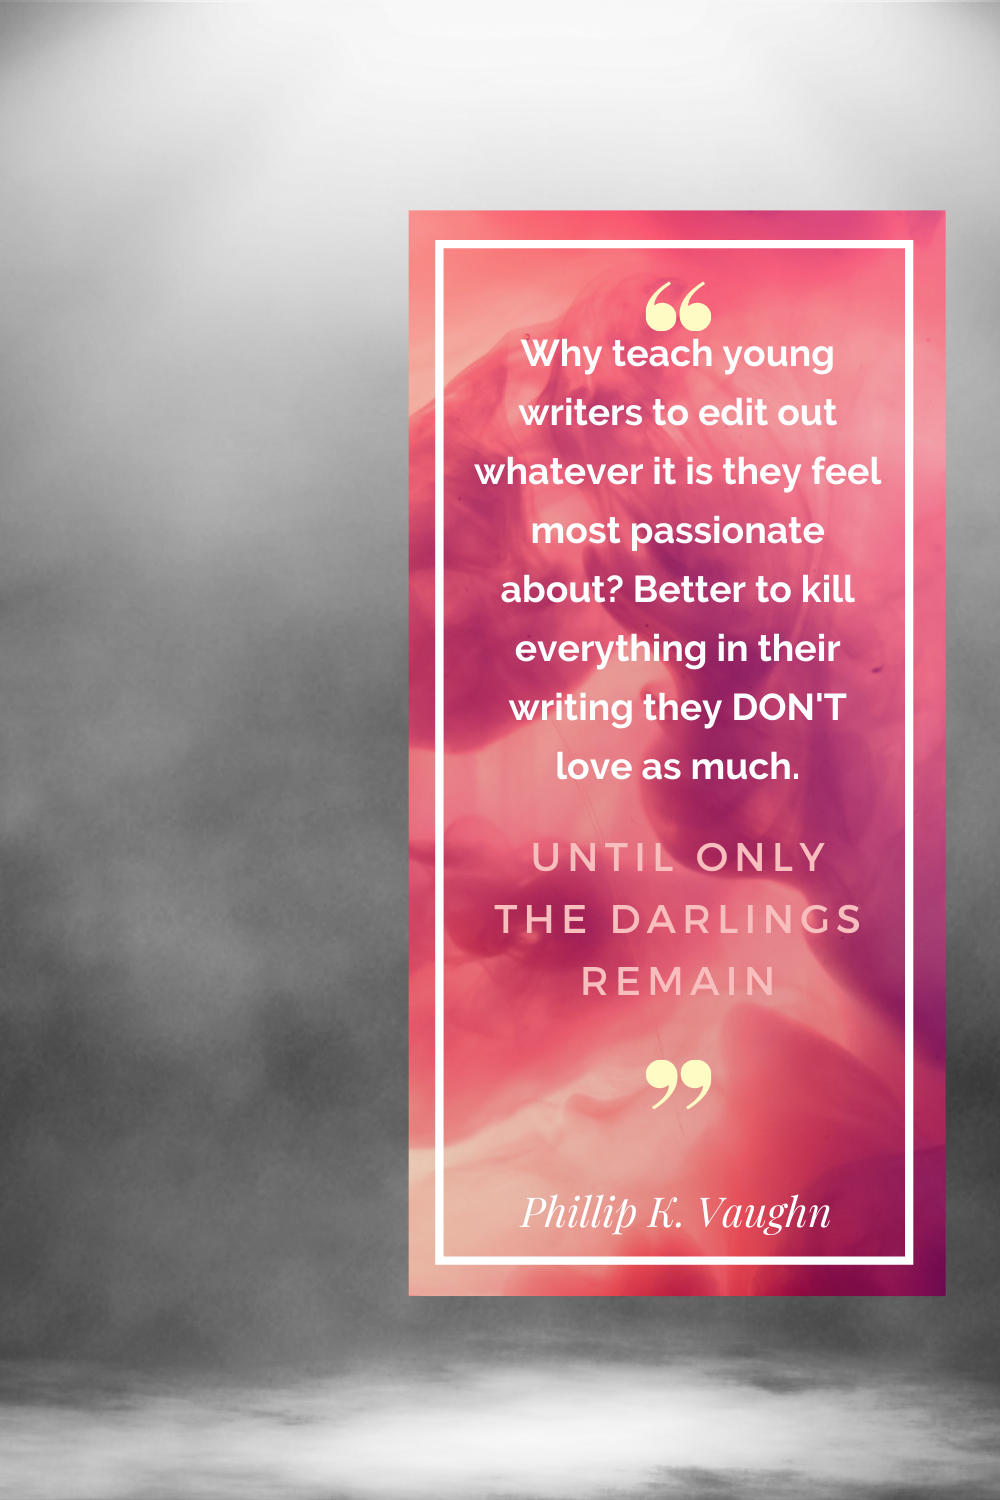 """Why teach young writers to edit out whatever it is they feel most passionate about?  Better to kill everything in their writing they DON'T love as much.  Until only the darlings remain."""""""